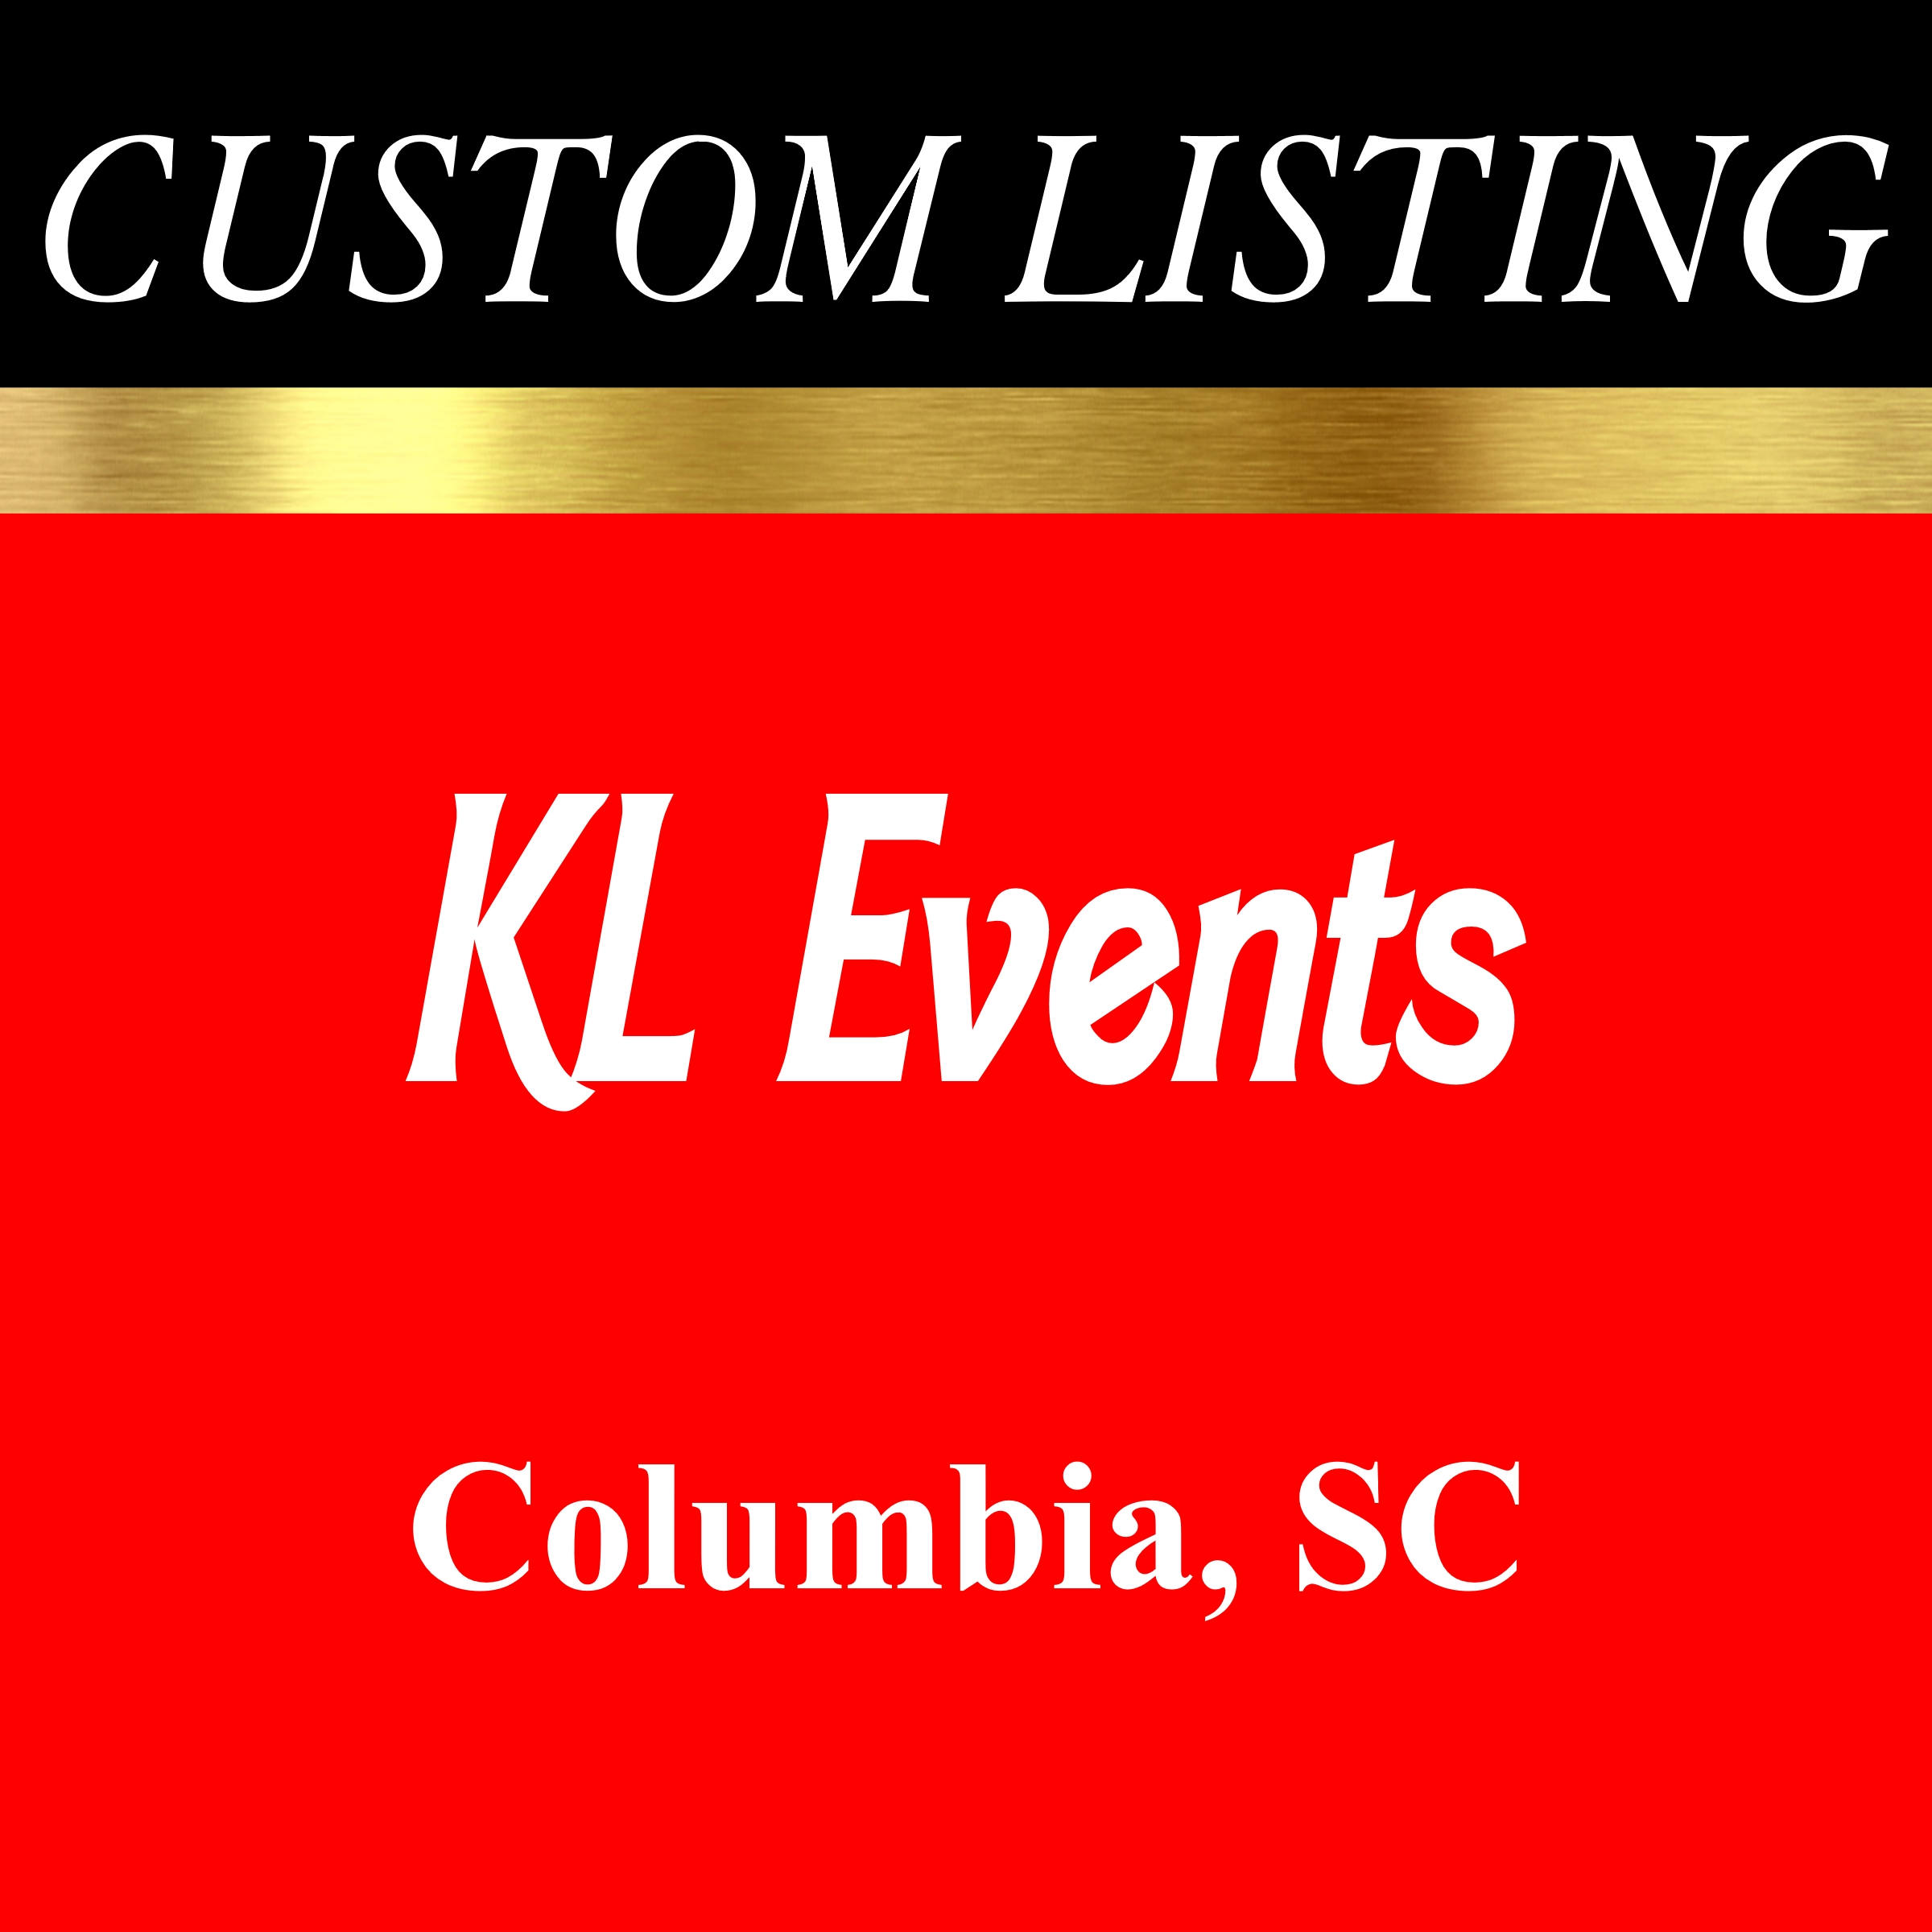 KL EVENTS